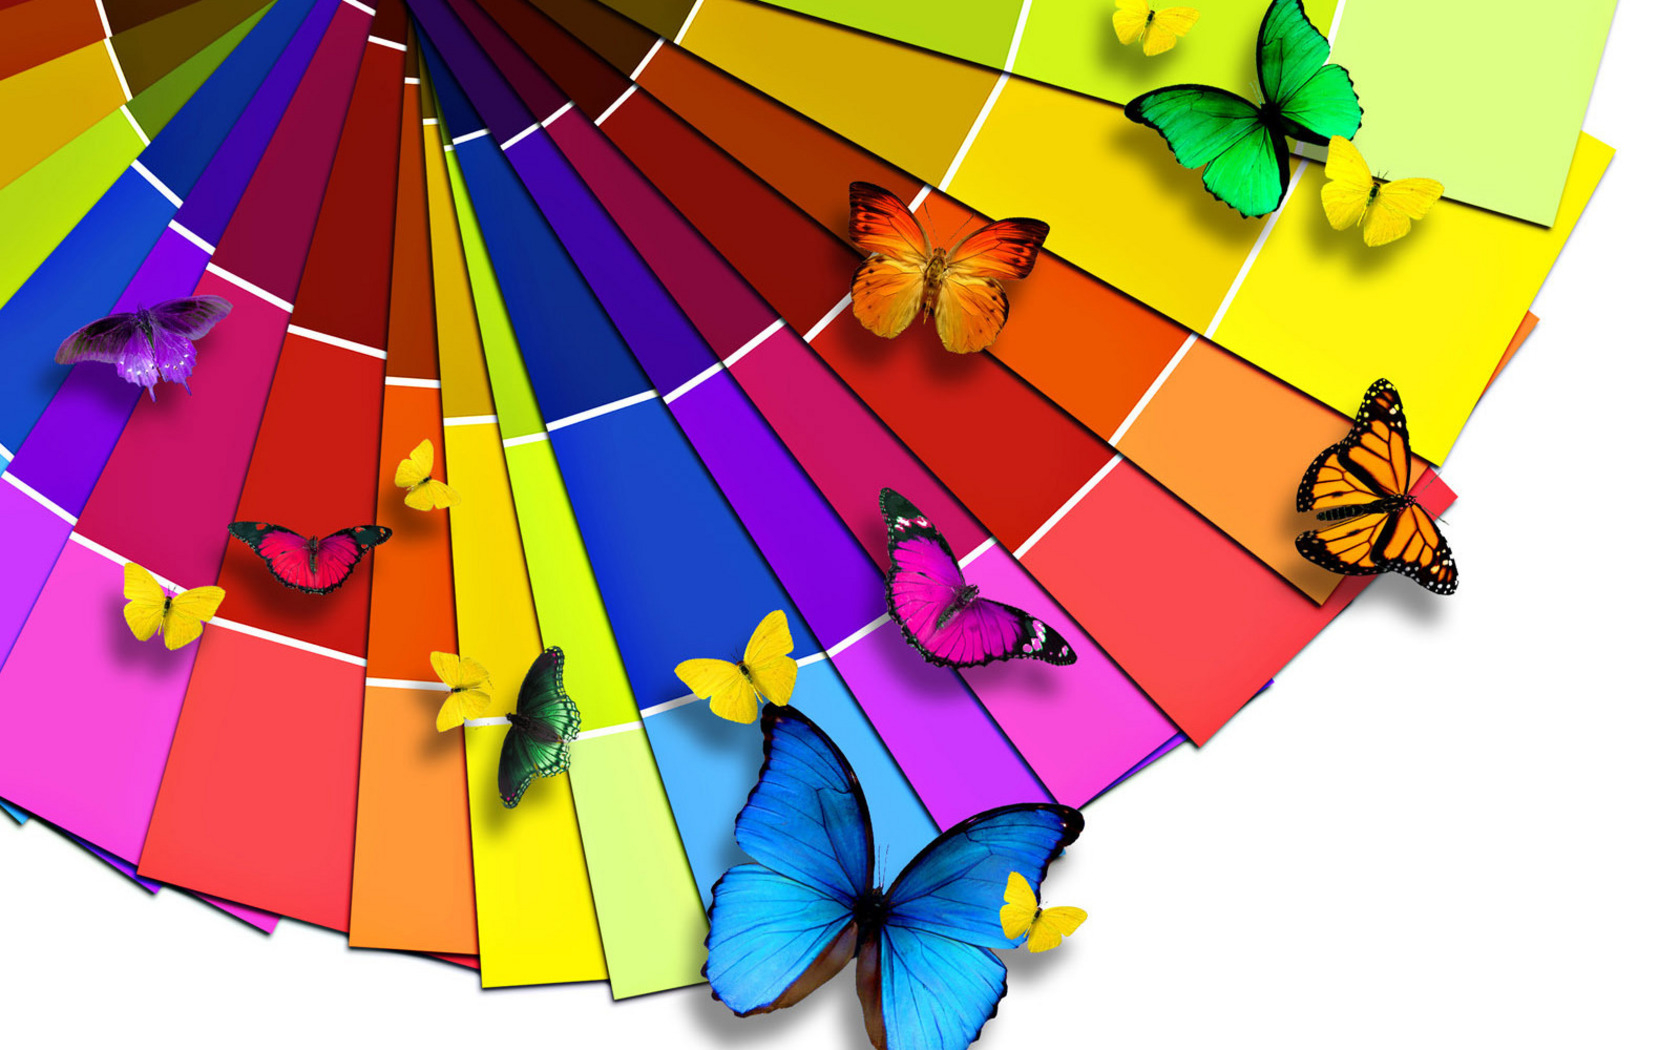 Photoshop_Multi-coloured_butterflies_023732_.jpg